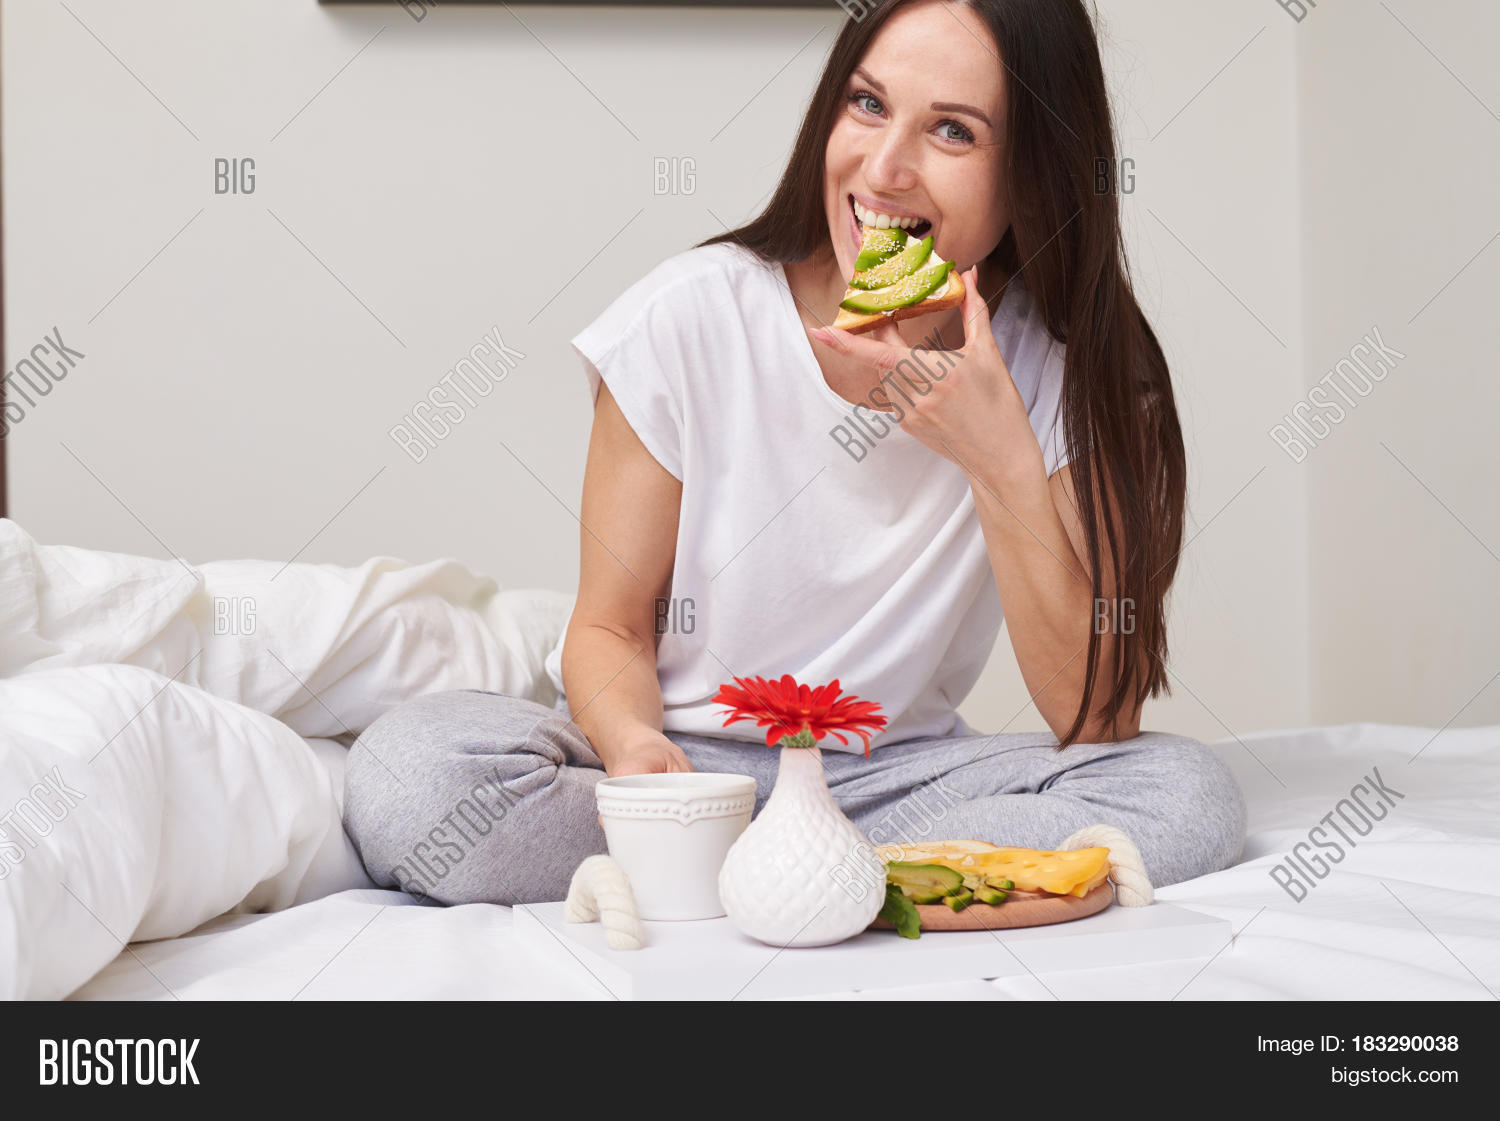 Mid shot of smiling woman in pajamas eating sandwich and enjoying romantic breakfast sitting in the bed with copy space